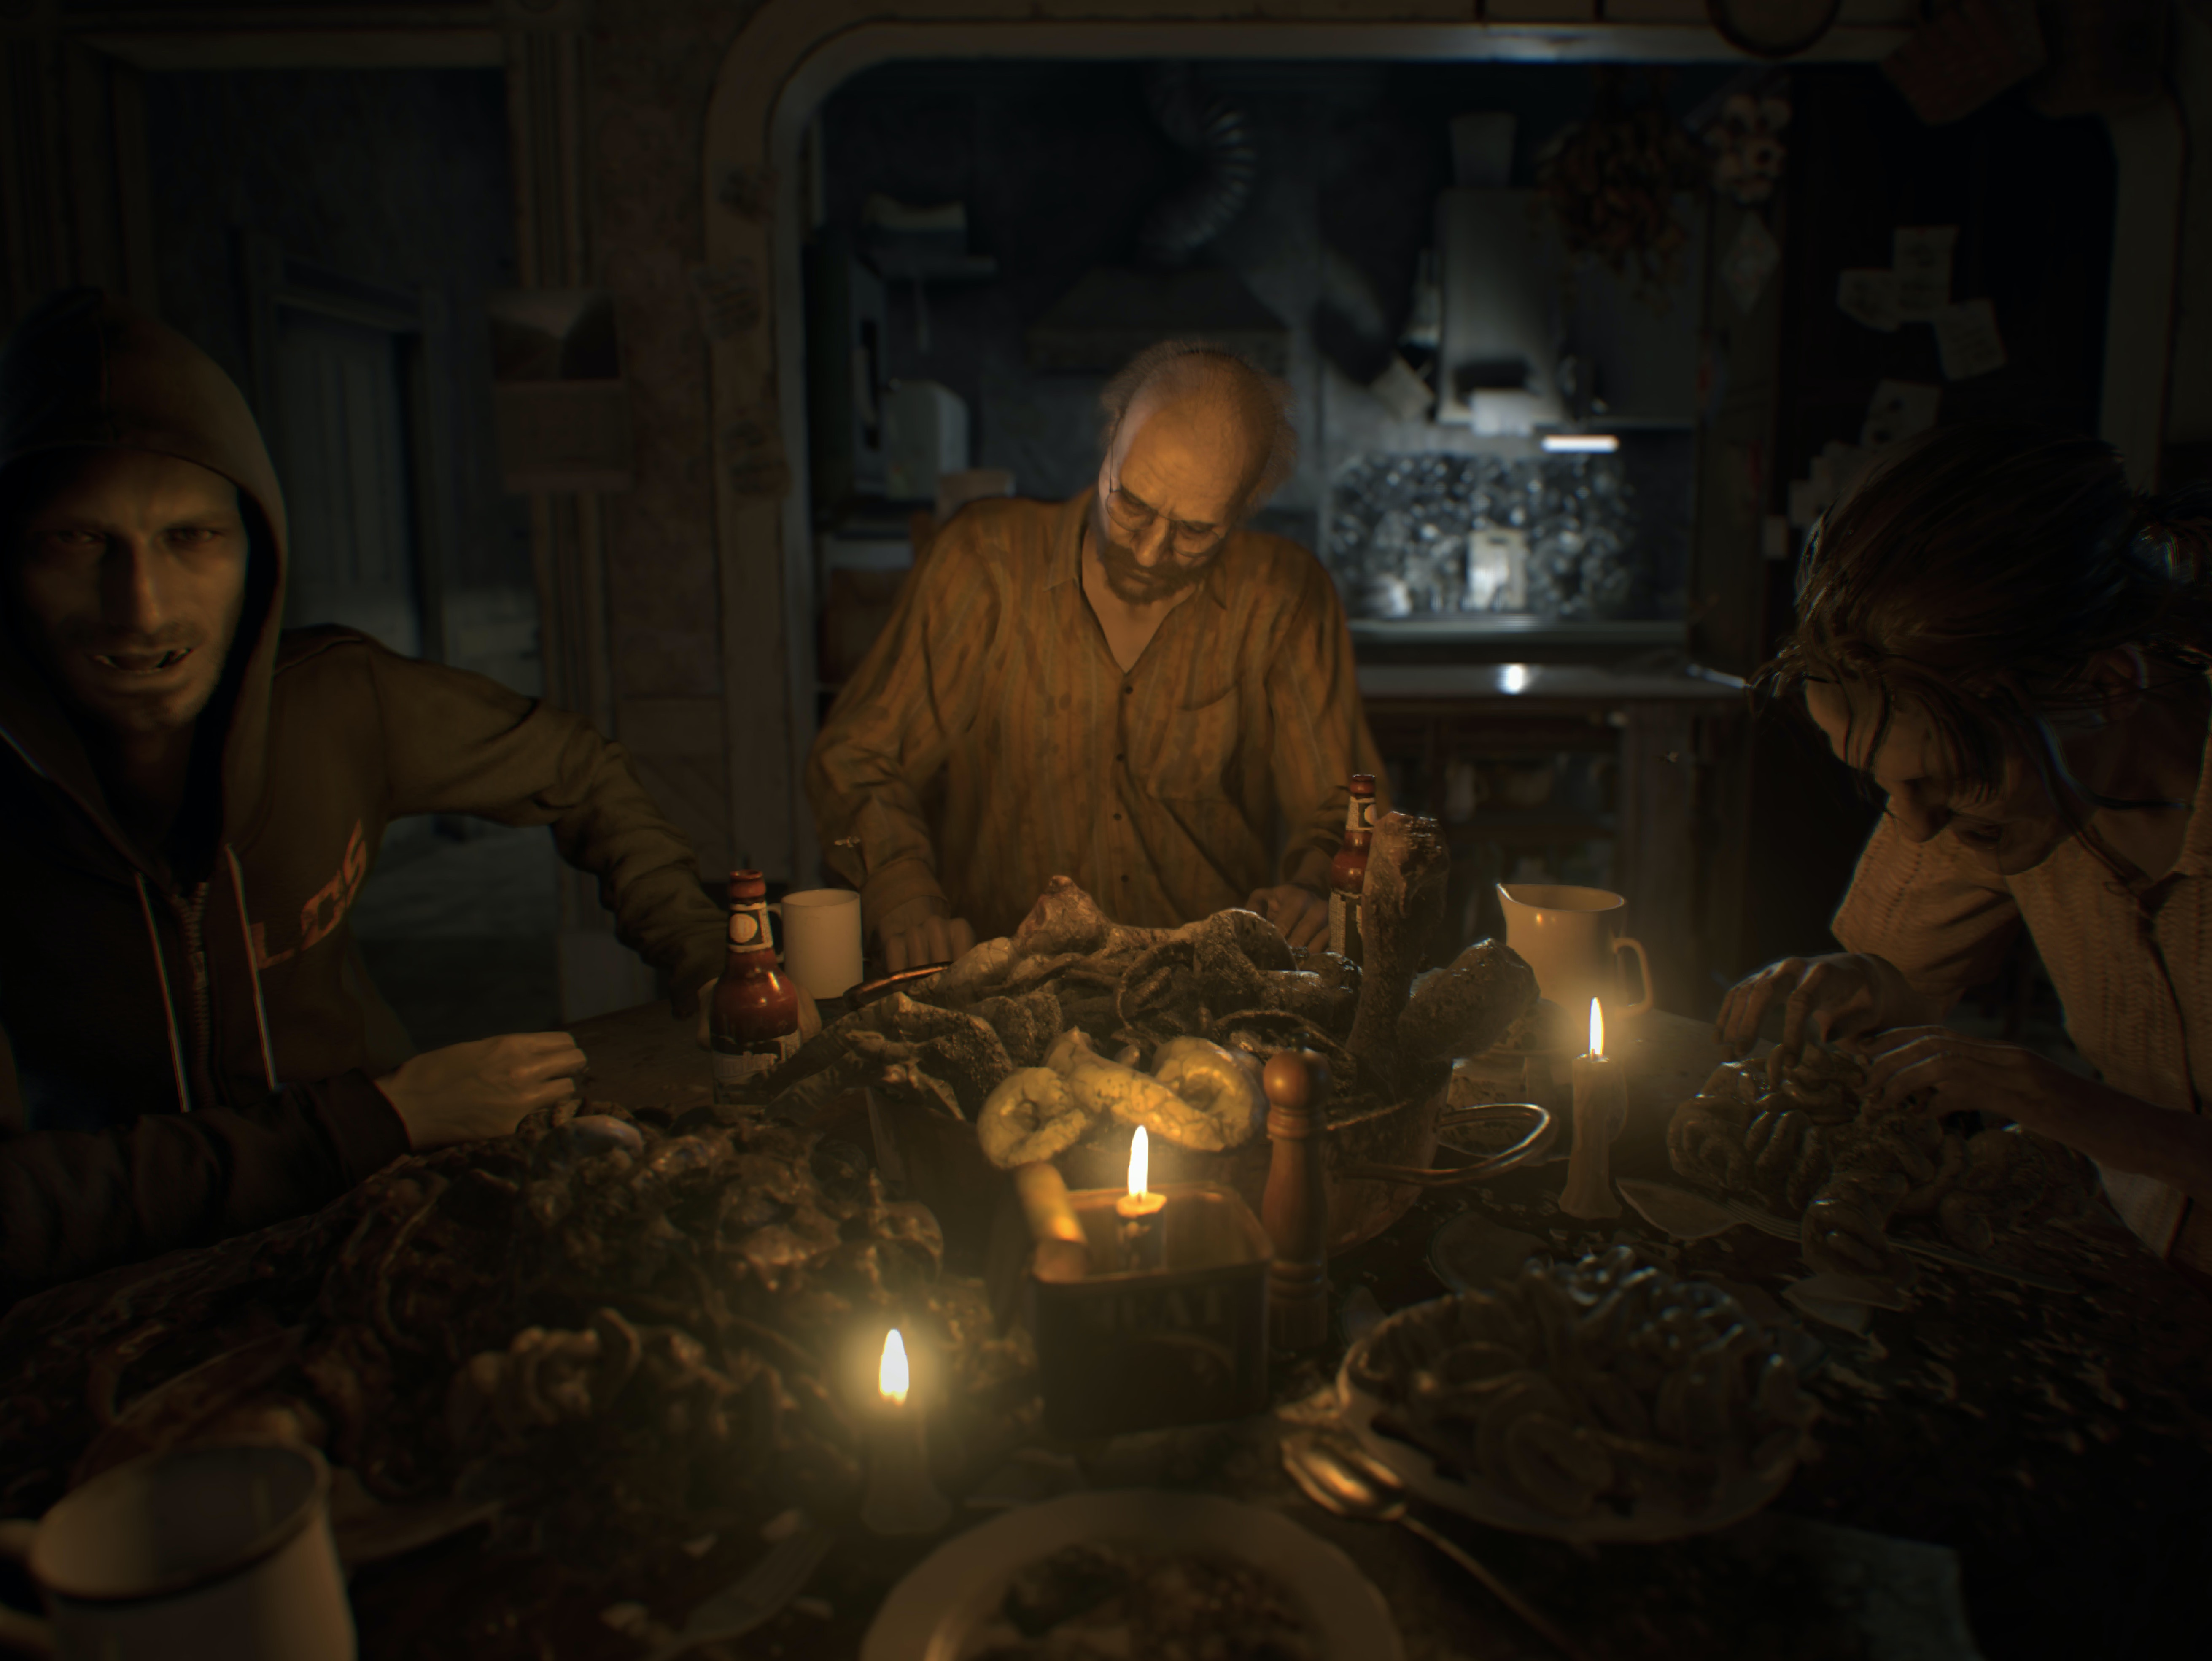 'Resident Evil 7' Is a Revitalization of the Franchise